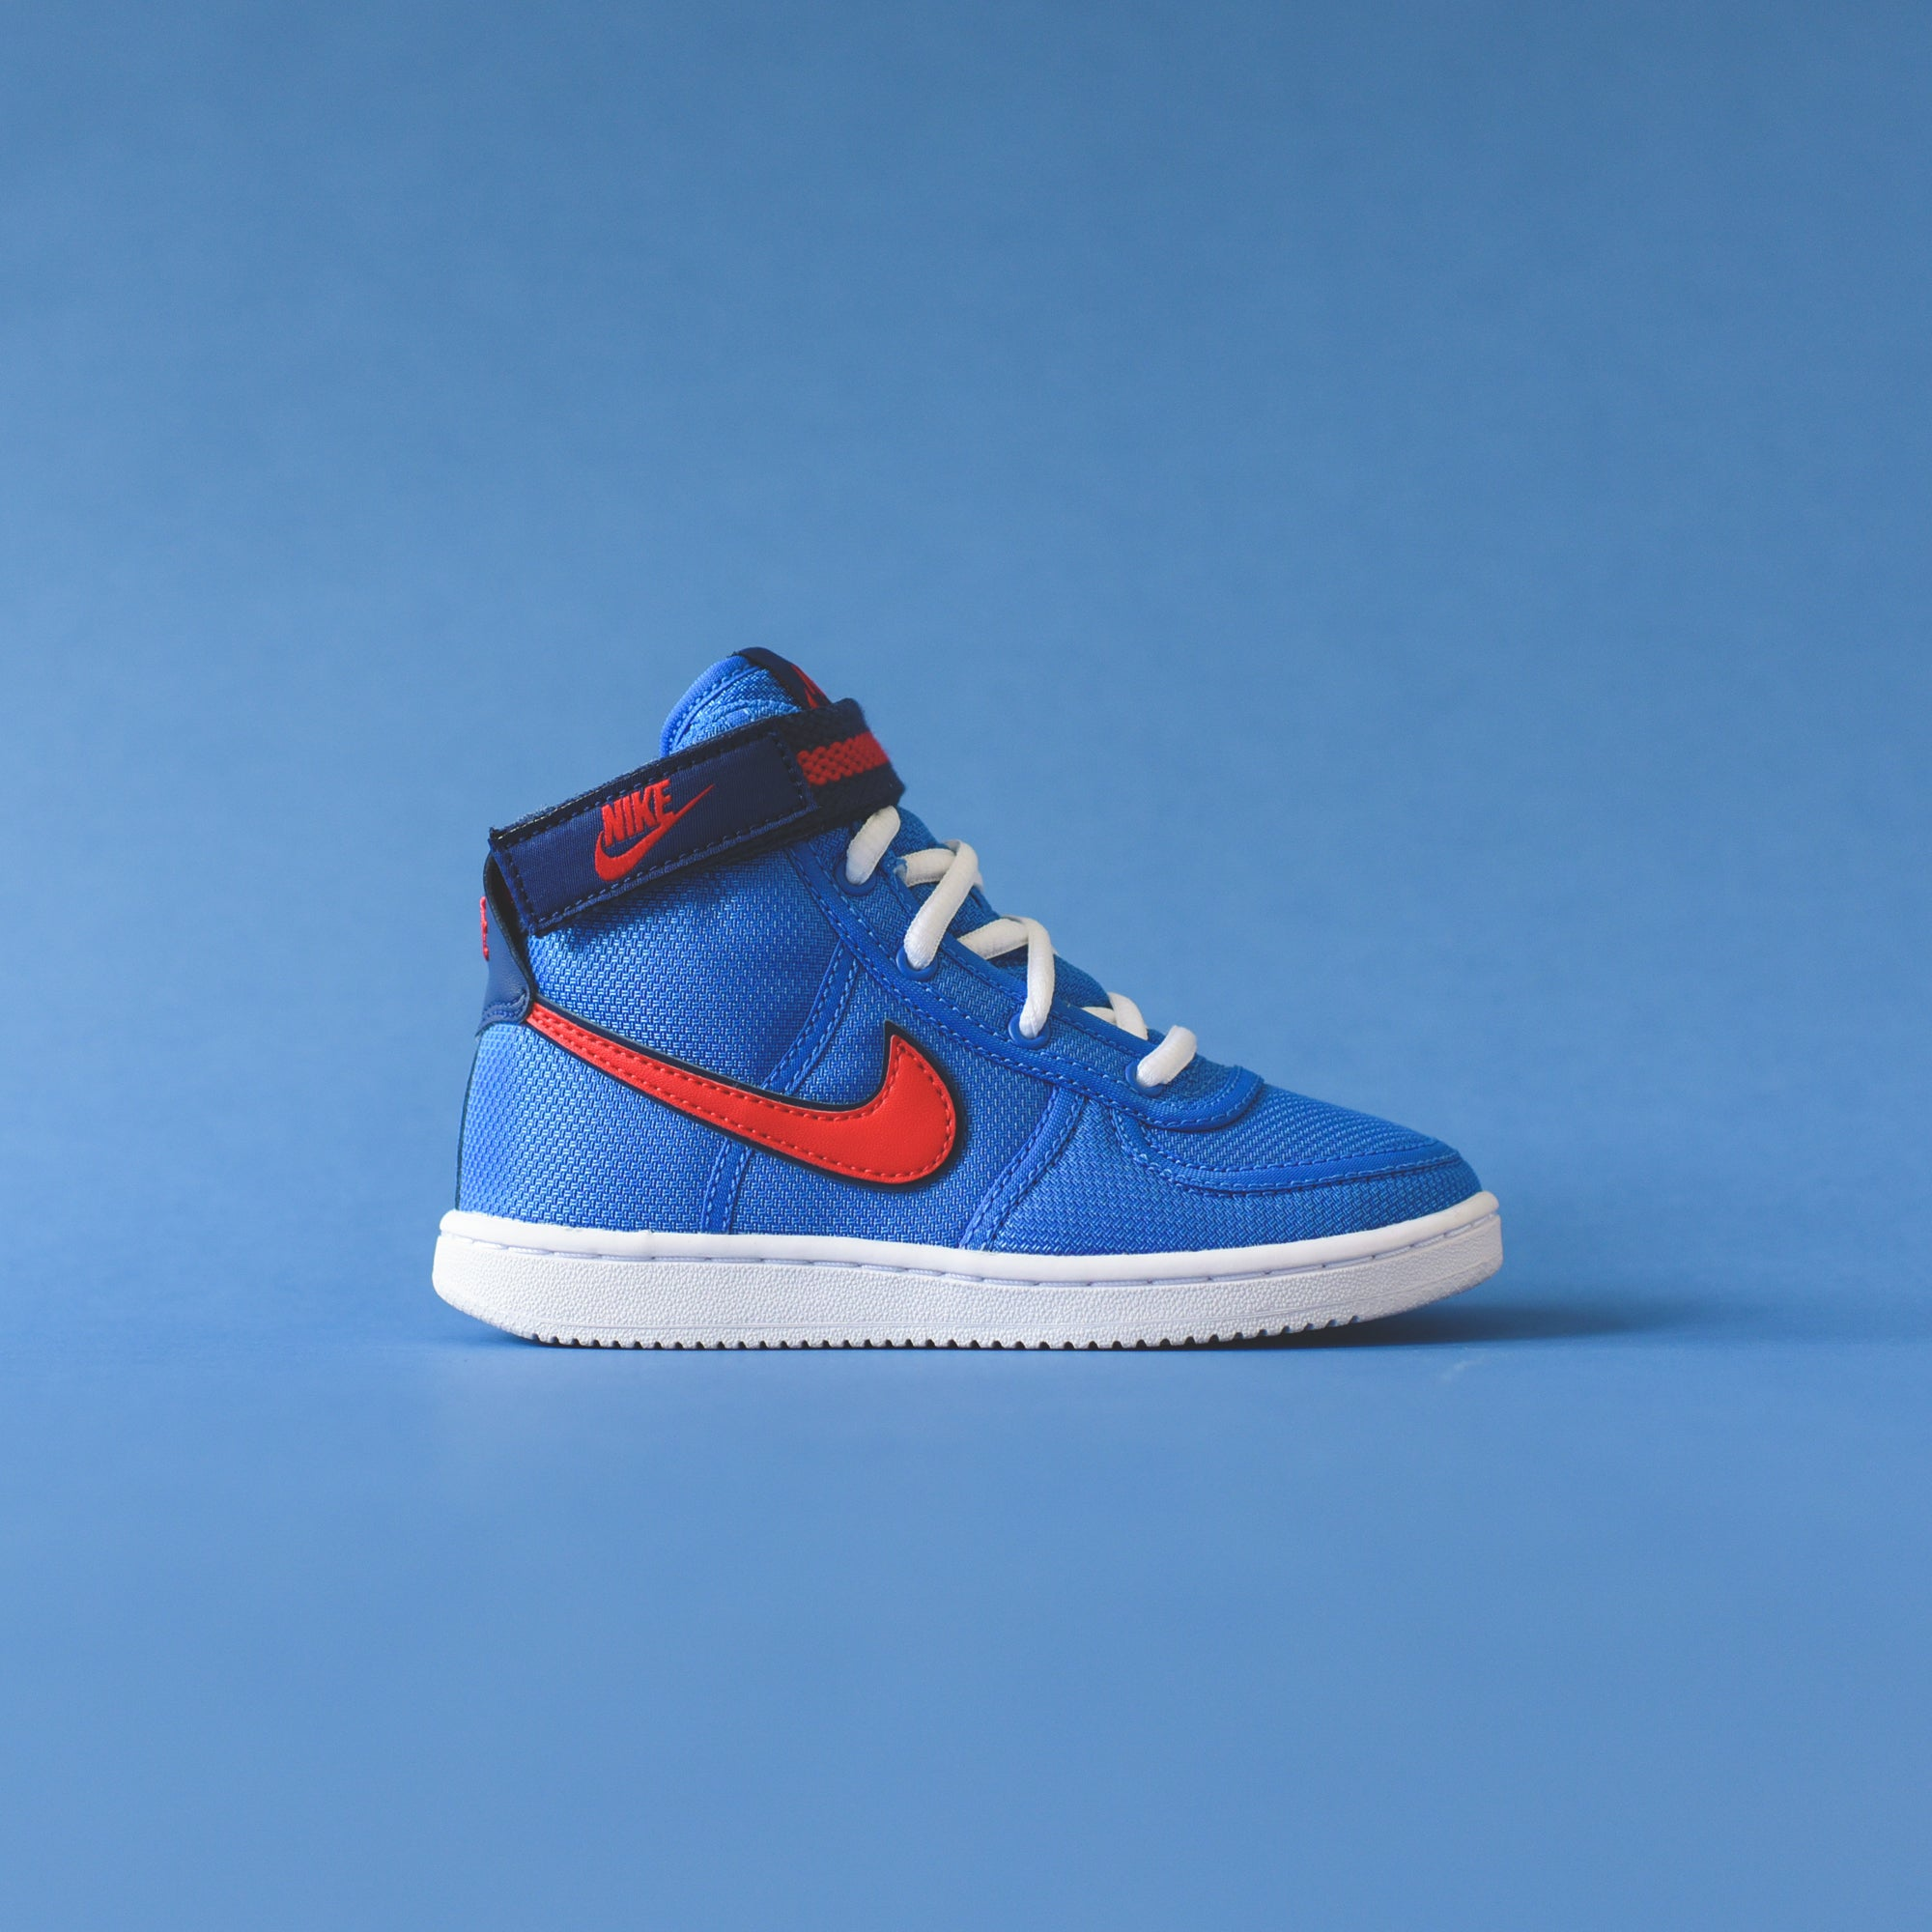 Nike Pre-School Vandal High Supreme - Signal Blue / University Red